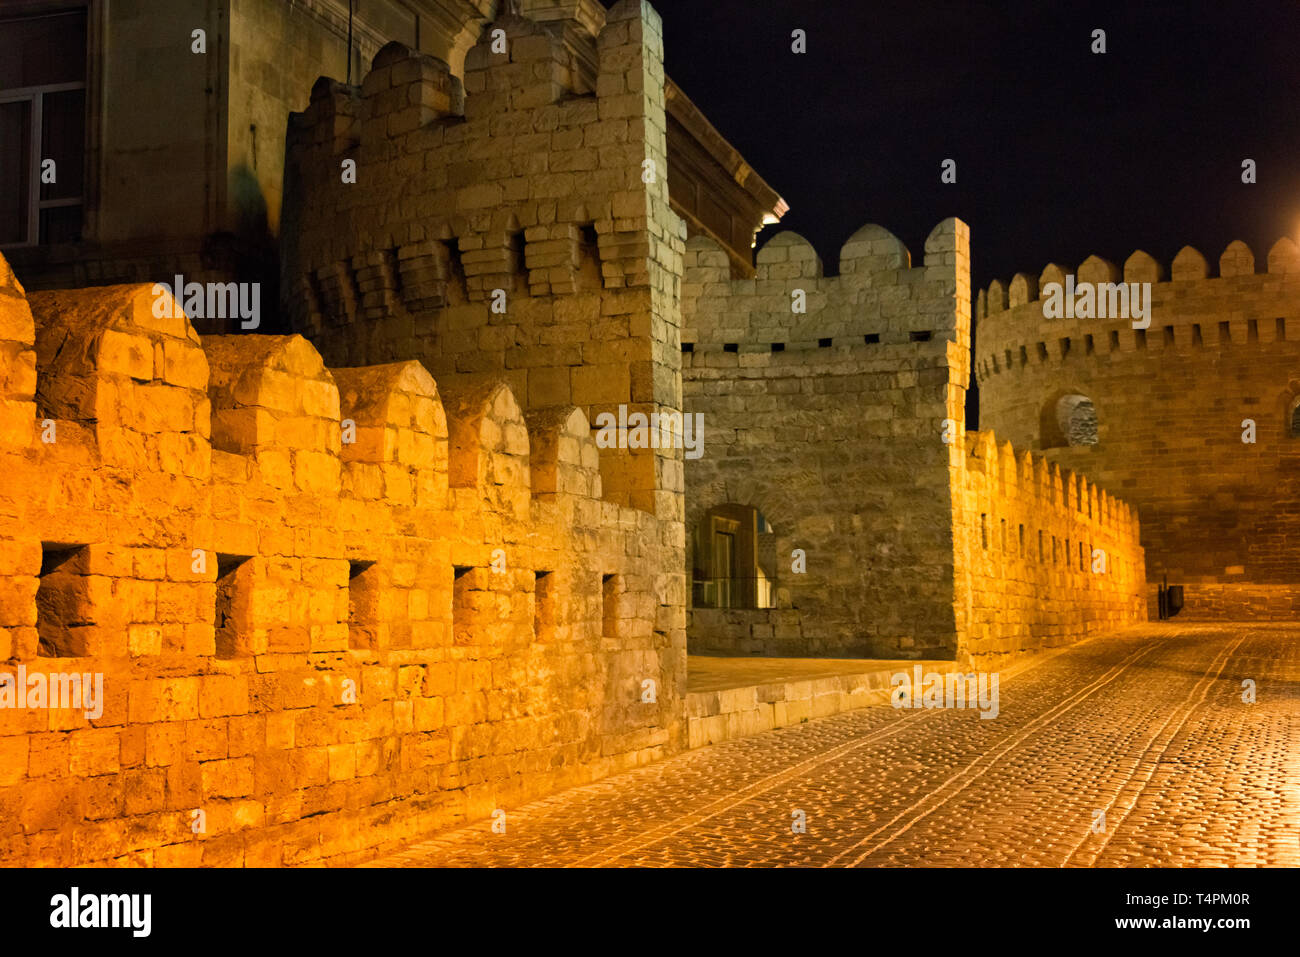 Old city wall and cobblestone street in the Inner City of Baku at night, Azerbaijan - Stock Image